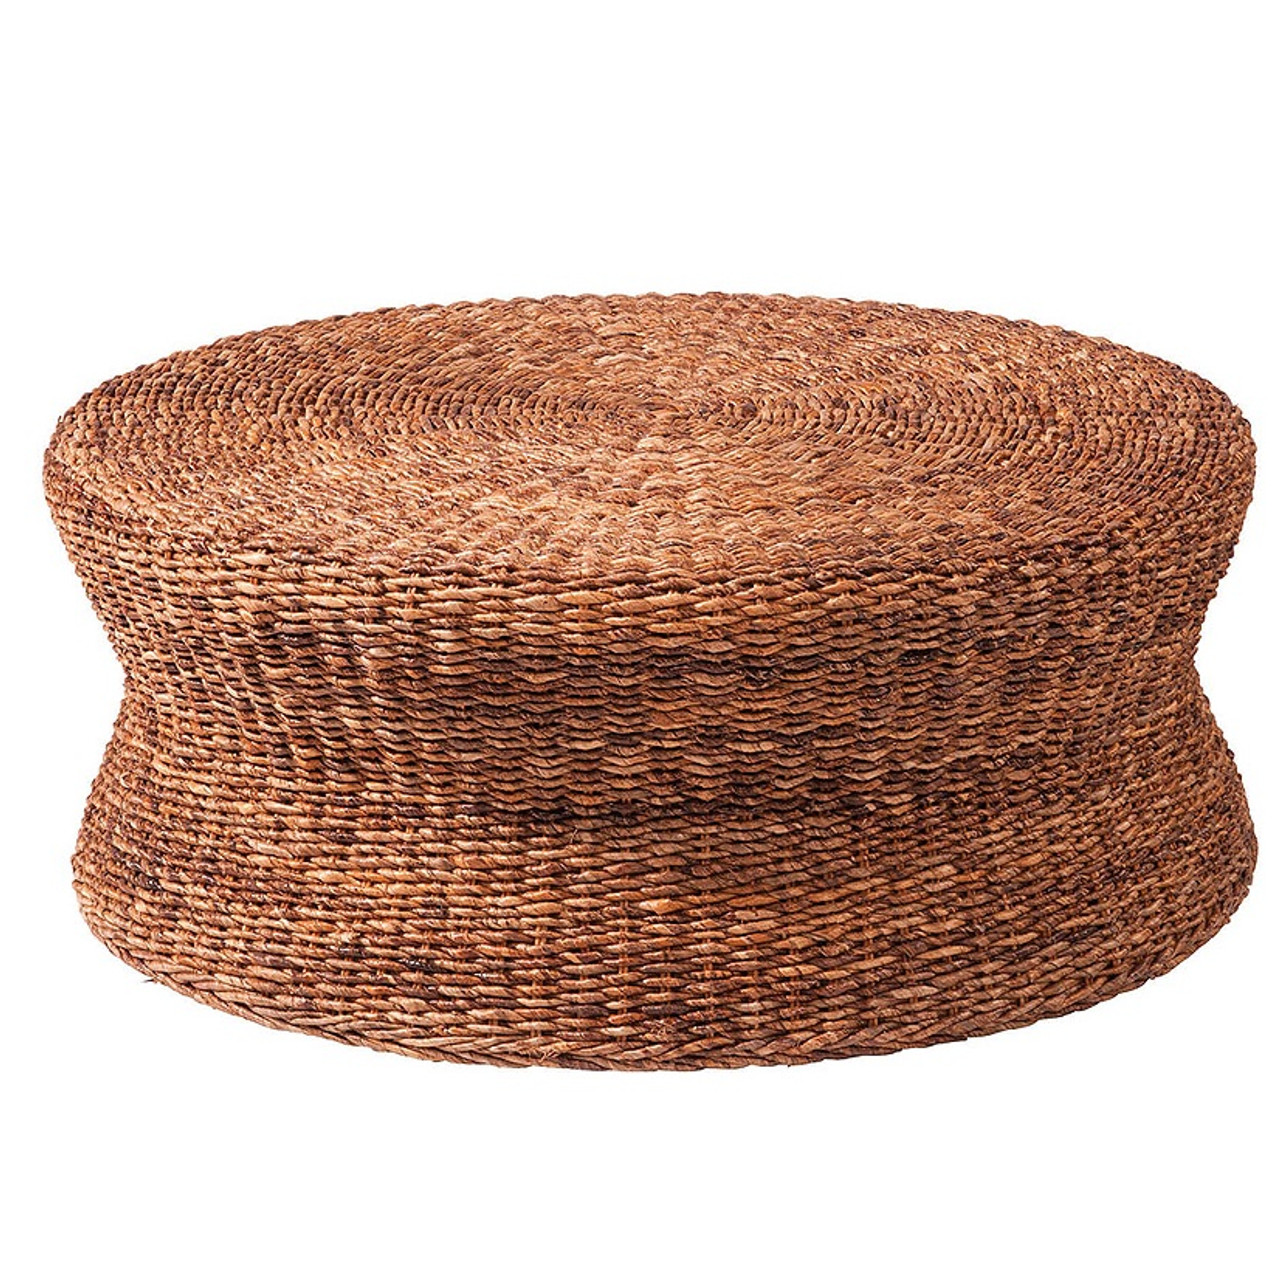 Attirant Lanai Woven Round Coffee Table Ottoman